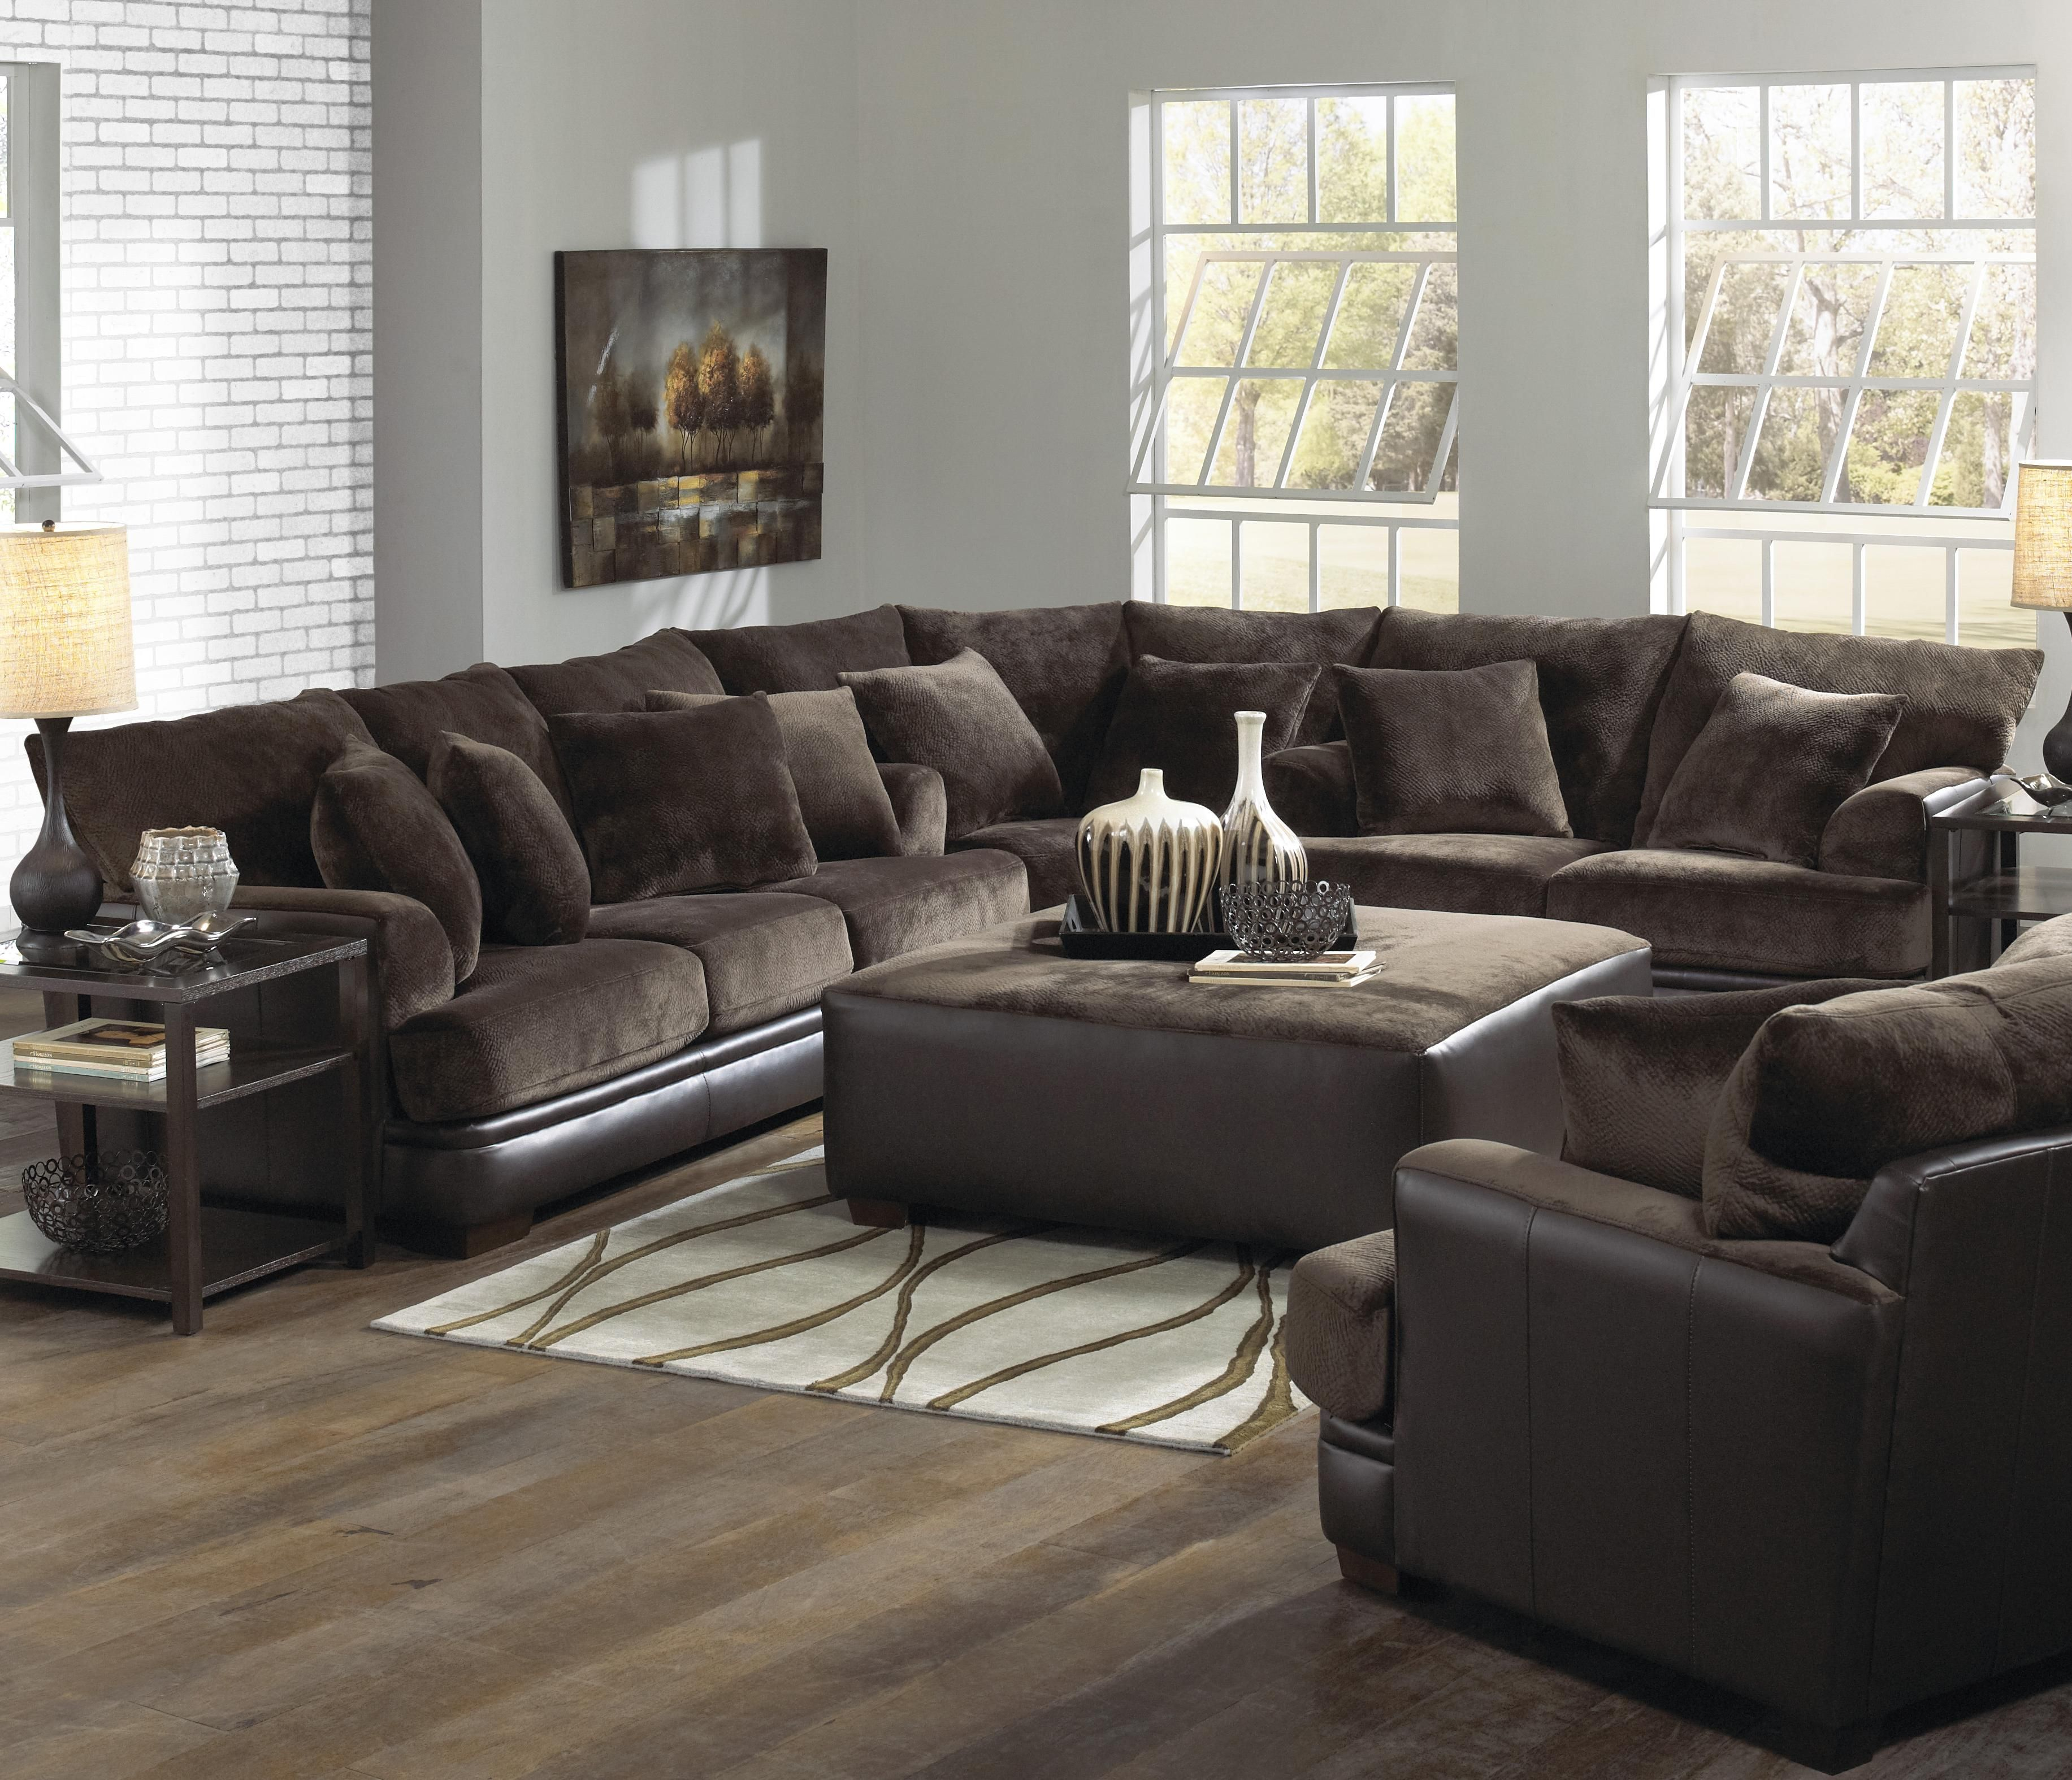 Barkley Large L Shaped Sectional Sofa With Right Side Loveseat By Jackson Furniture Wolf